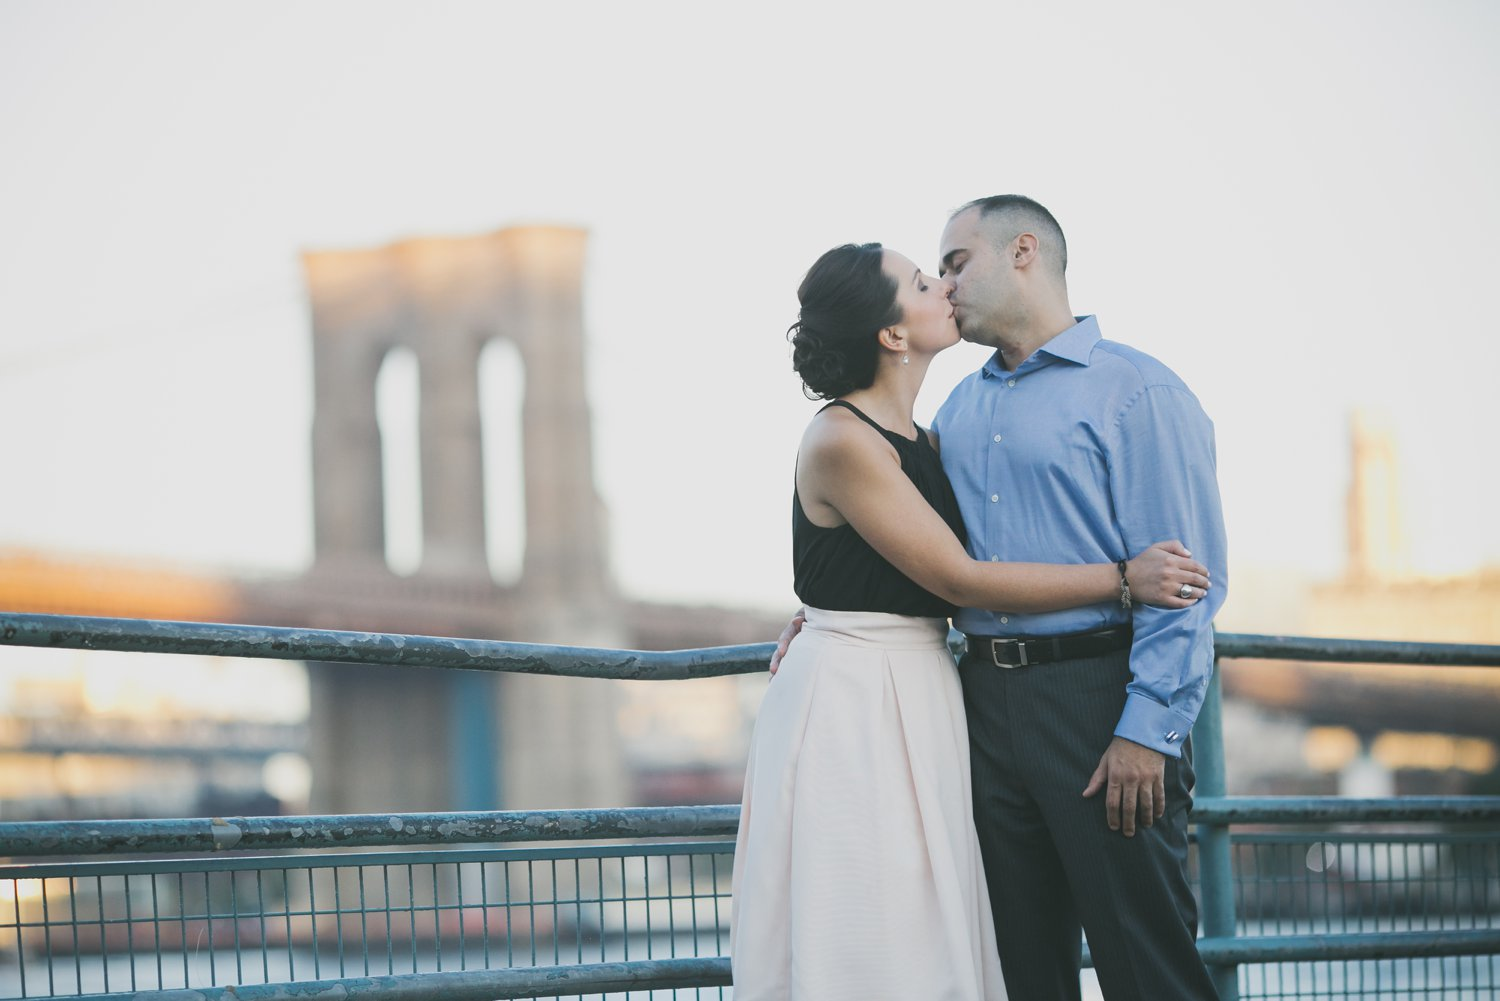 13NYC-NJ-ENGAGEMENT-PHOTOGRAPHY-BY-INTOTHESTORY-MOO-JAE.JPG